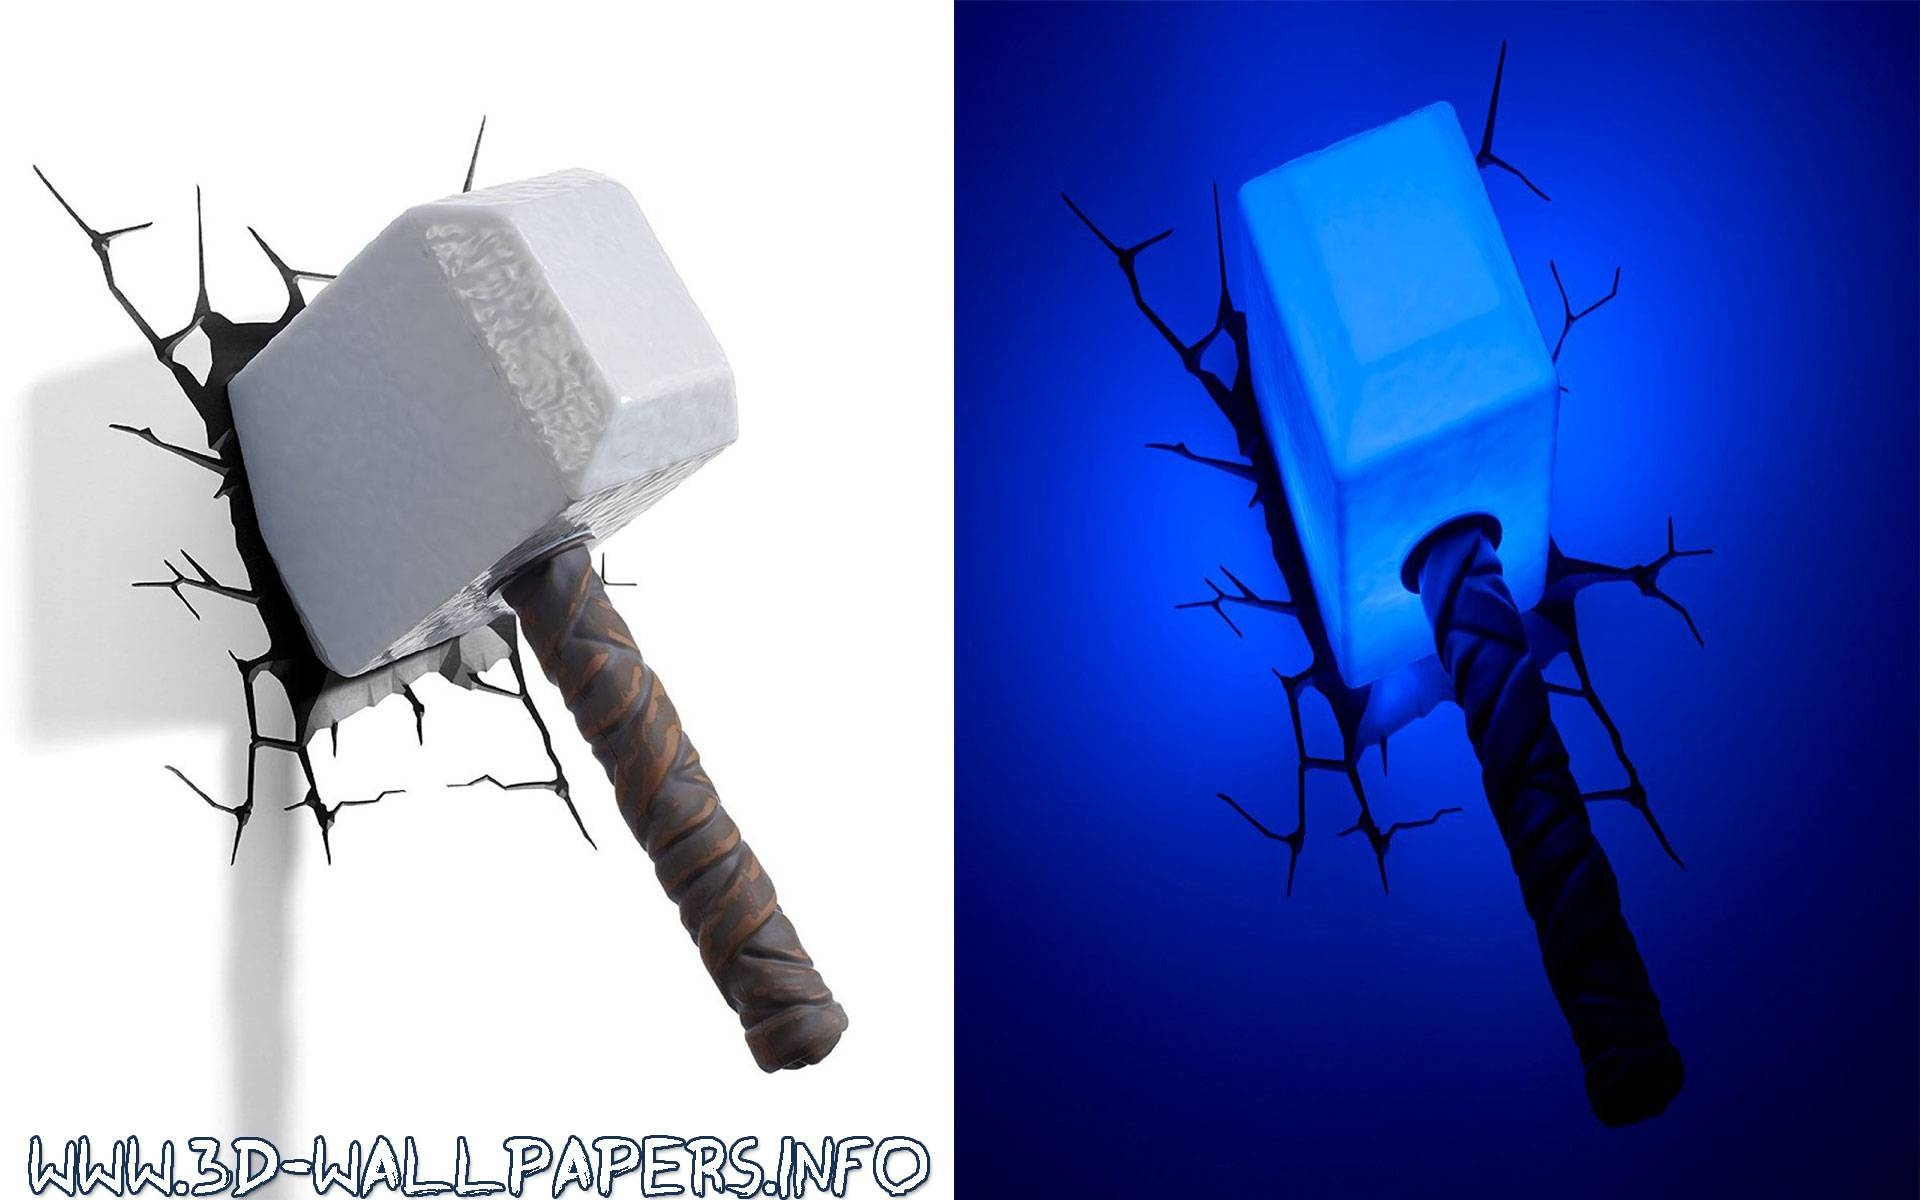 20 best ideas of 3d wall art thor hammer night light thor hammer 3d wall art decor night light lamp uk wallartideas with 2018 3d wall mozeypictures